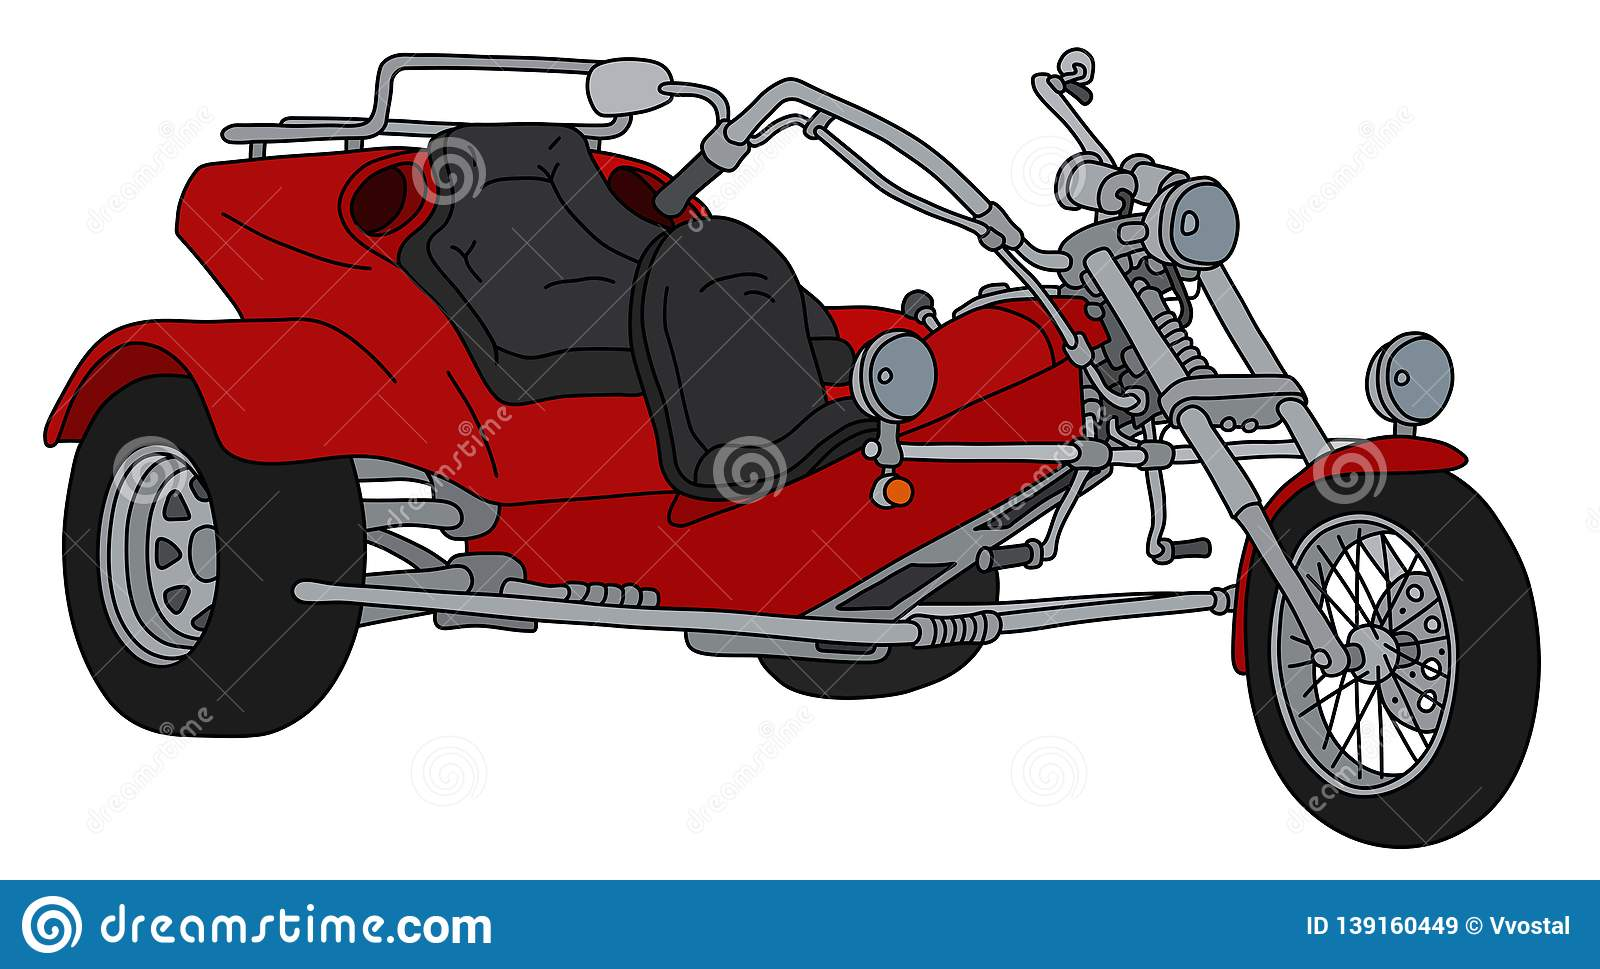 Drawing Hand Tricycle Vector Stock Illustrations 89 Drawing Hand Tricycle Vector Stock Illustrations Vectors Clipart Dreamstime